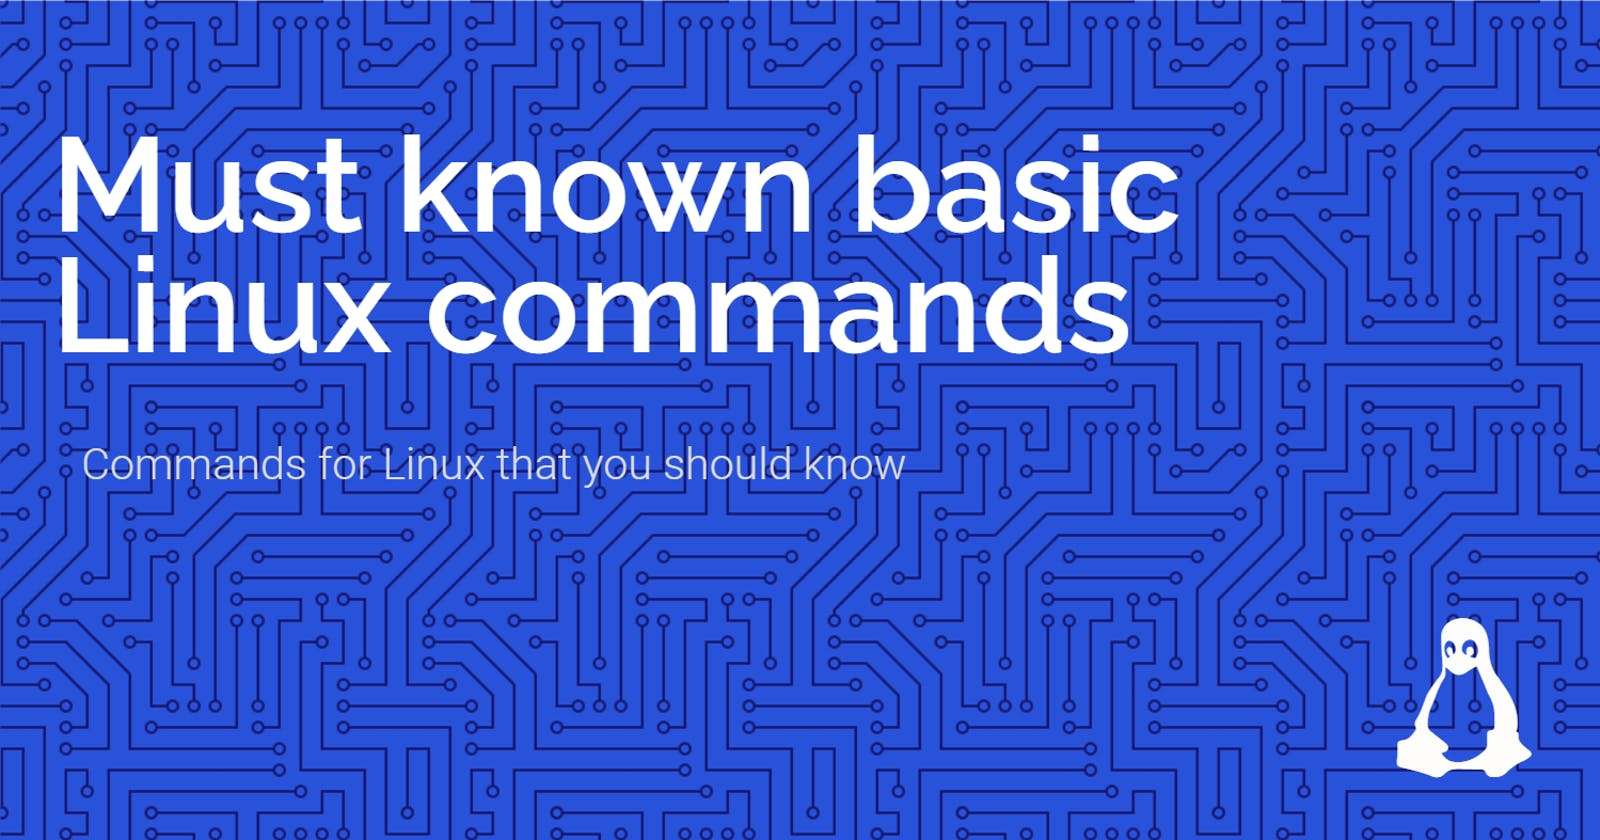 Must know basic Linux commands